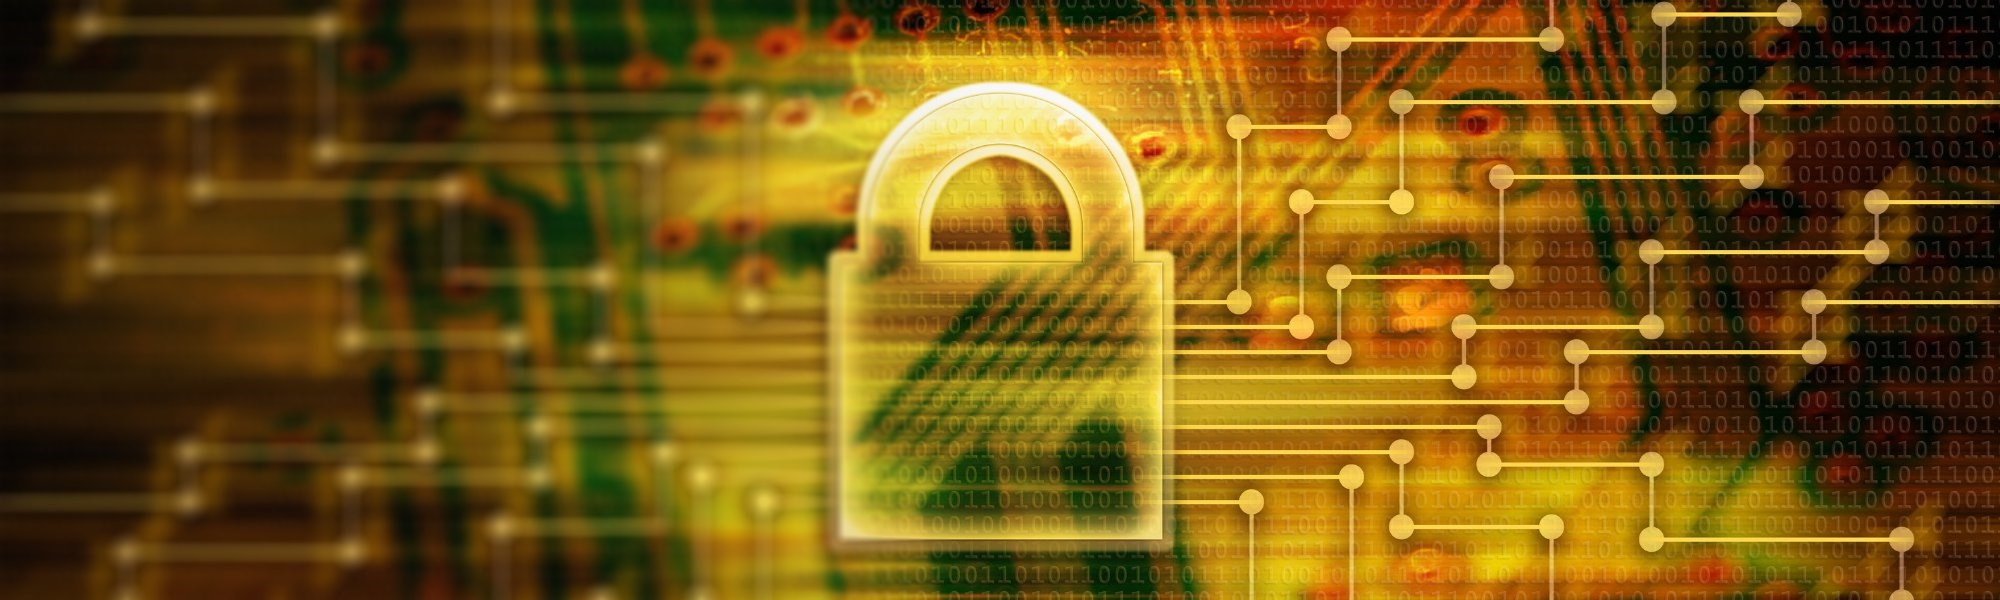 Certificate in cybersecurity uw professional continuing education skip to main content xflitez Choice Image